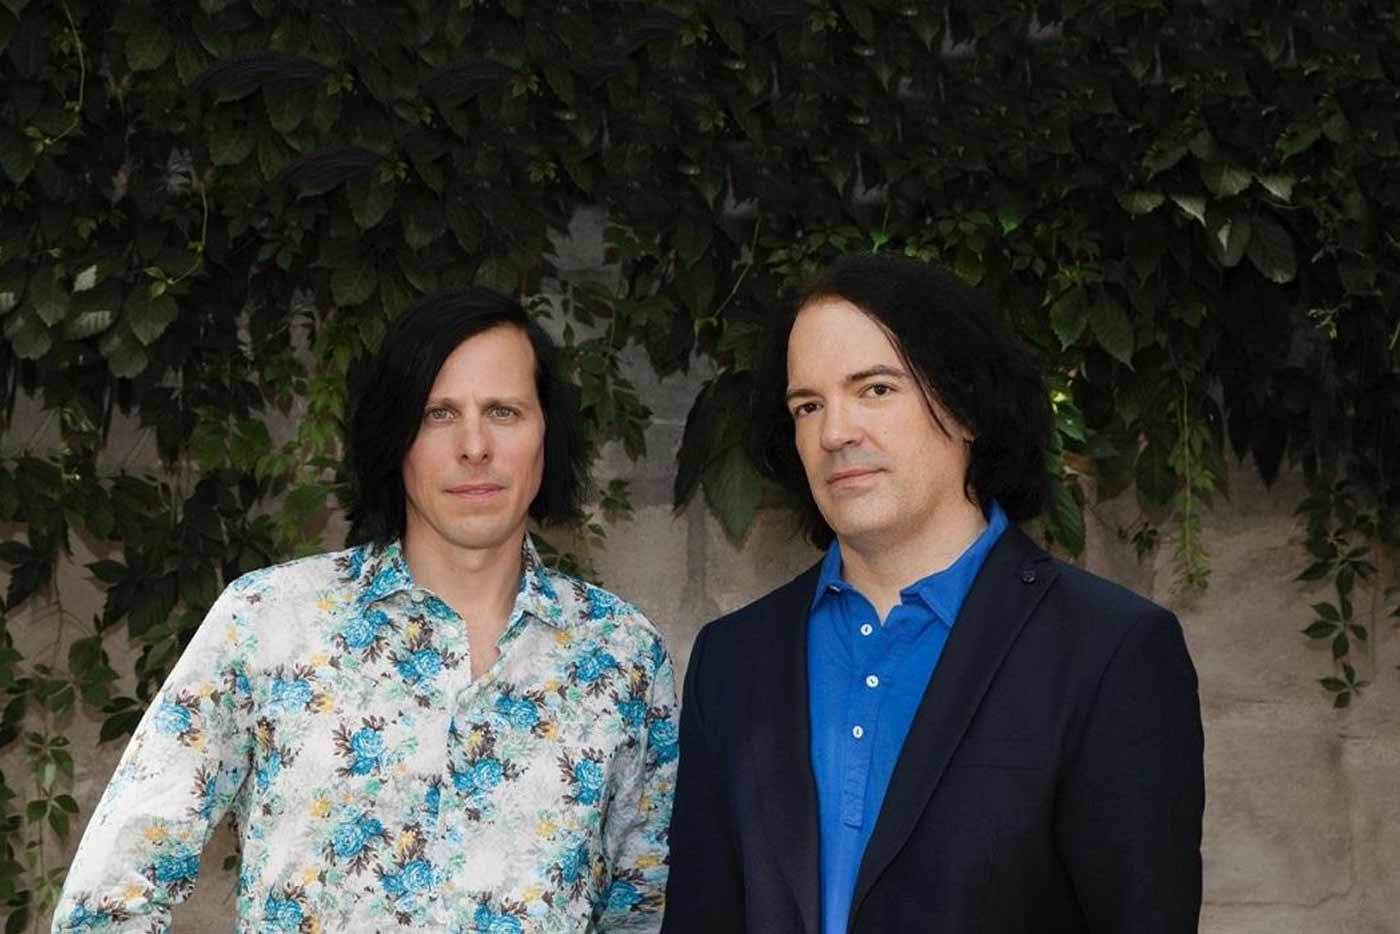 The Posies giran en abril con su octavo álbum